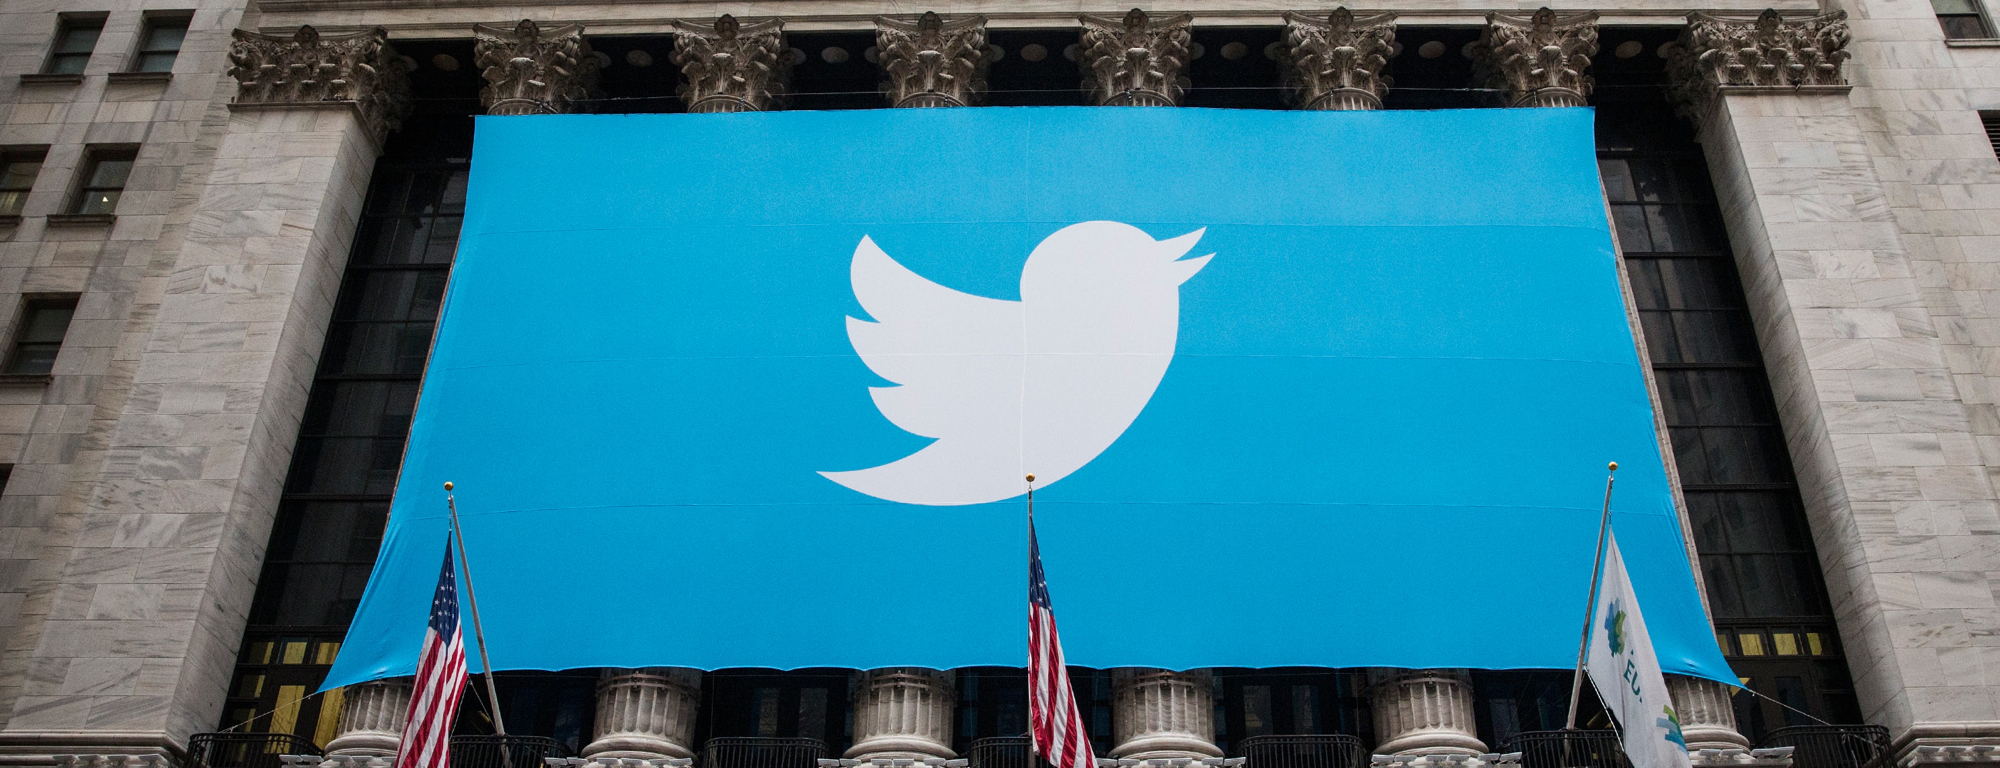 Twitter is increasing its focus on Asia after making a spate of new hires in the region